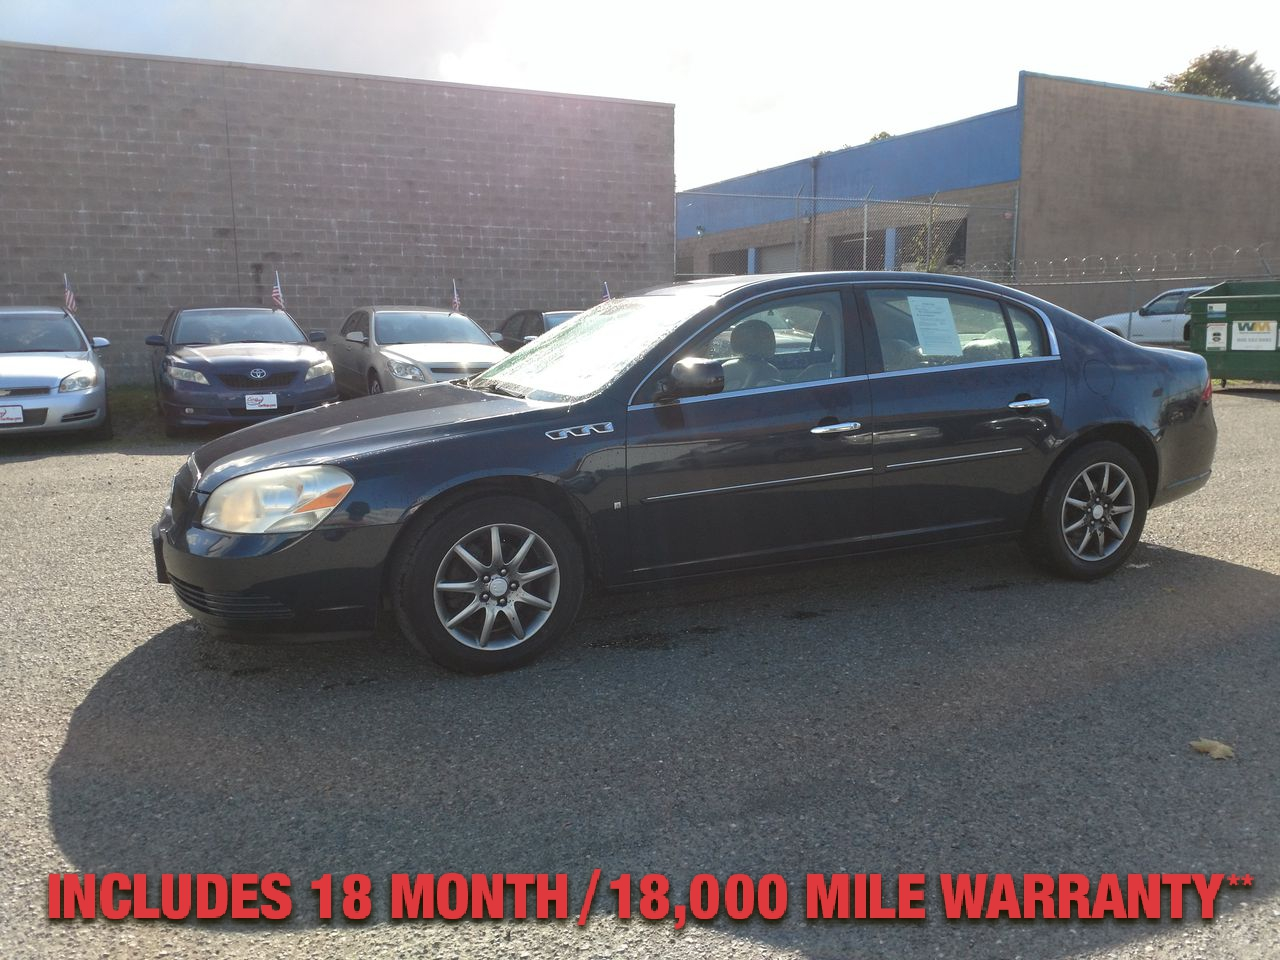 Pre-Owned 2006 BUICK LUCERNE CXL Sedan